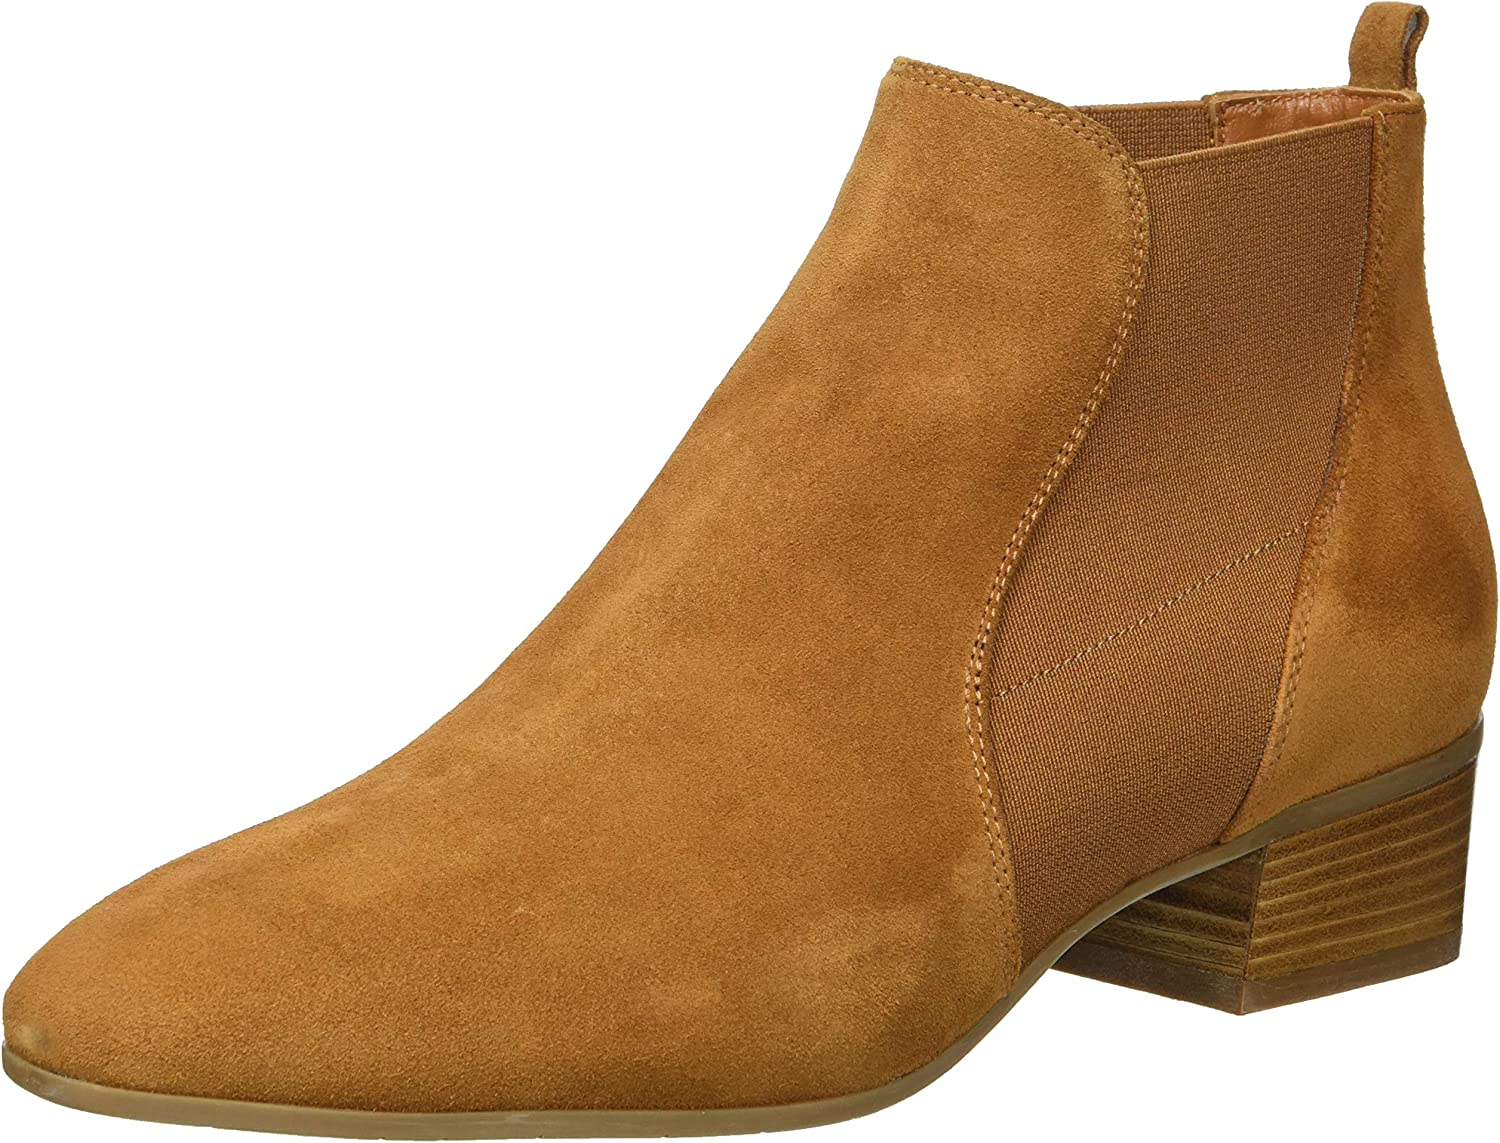 Aquatalia Women's Falco Suede Chelsea Boot bark 10.5M US